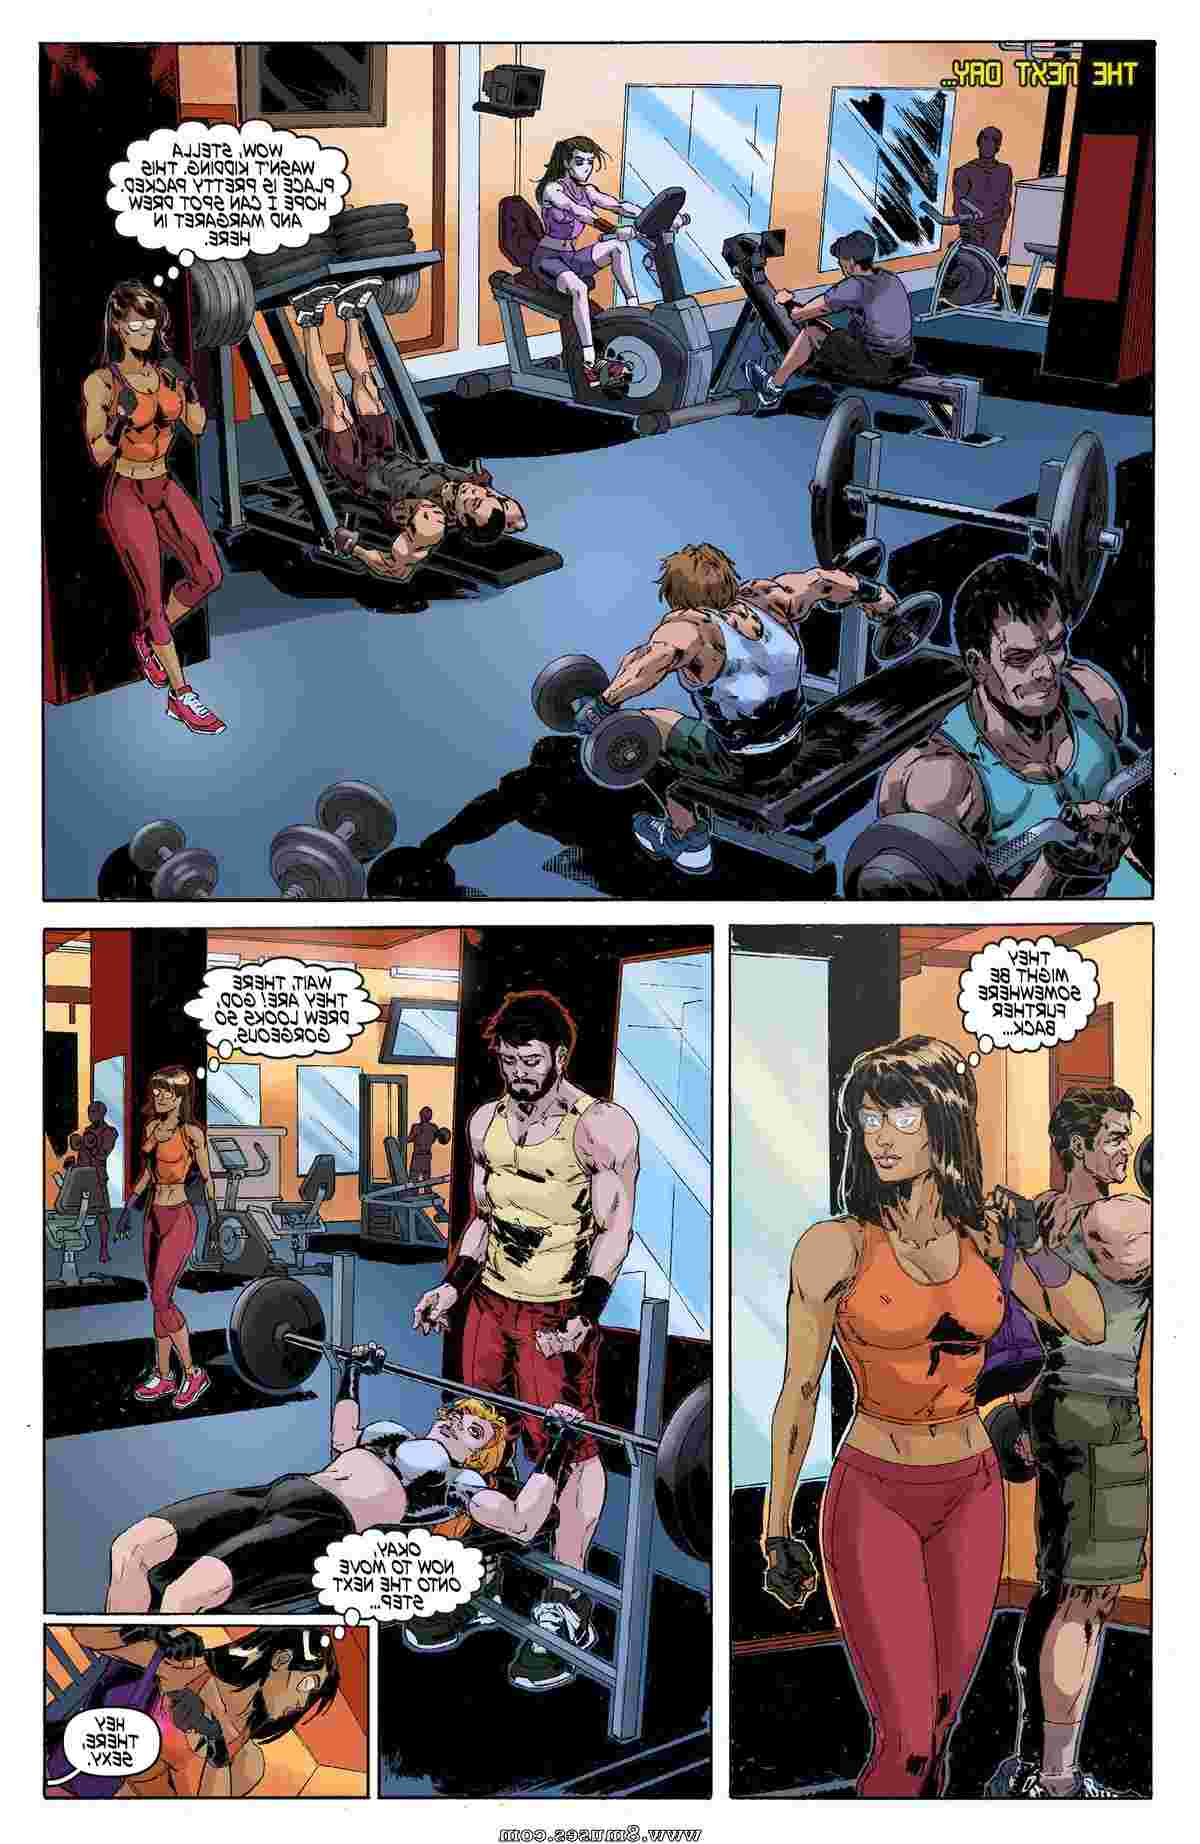 MuscleFan-Comics/Leveling-The-Field Leveling_The_Field__8muses_-_Sex_and_Porn_Comics_12.jpg